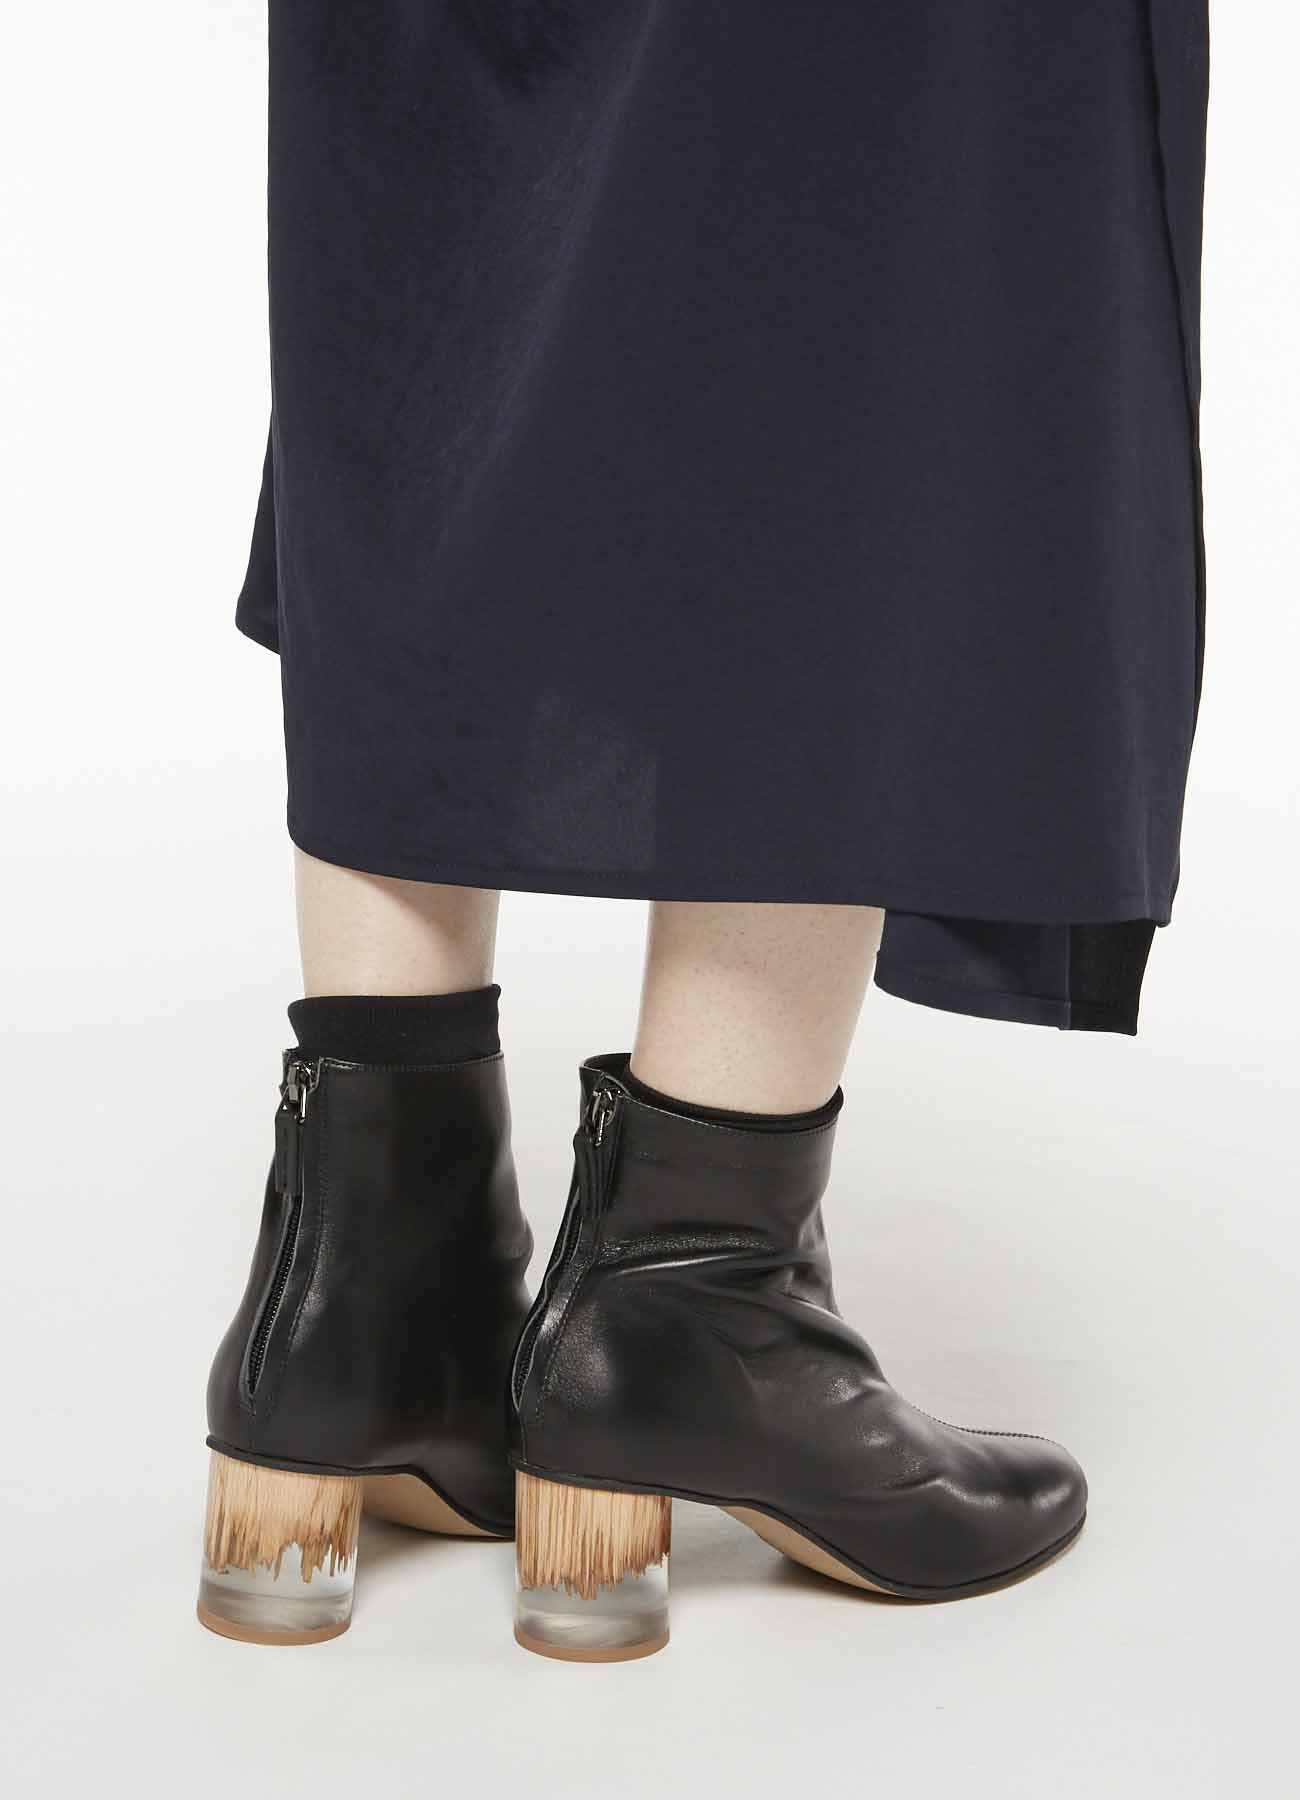 KAYONAKAMURAbyY's SOFT SMOOTH CLEAR HEEL BOOTS